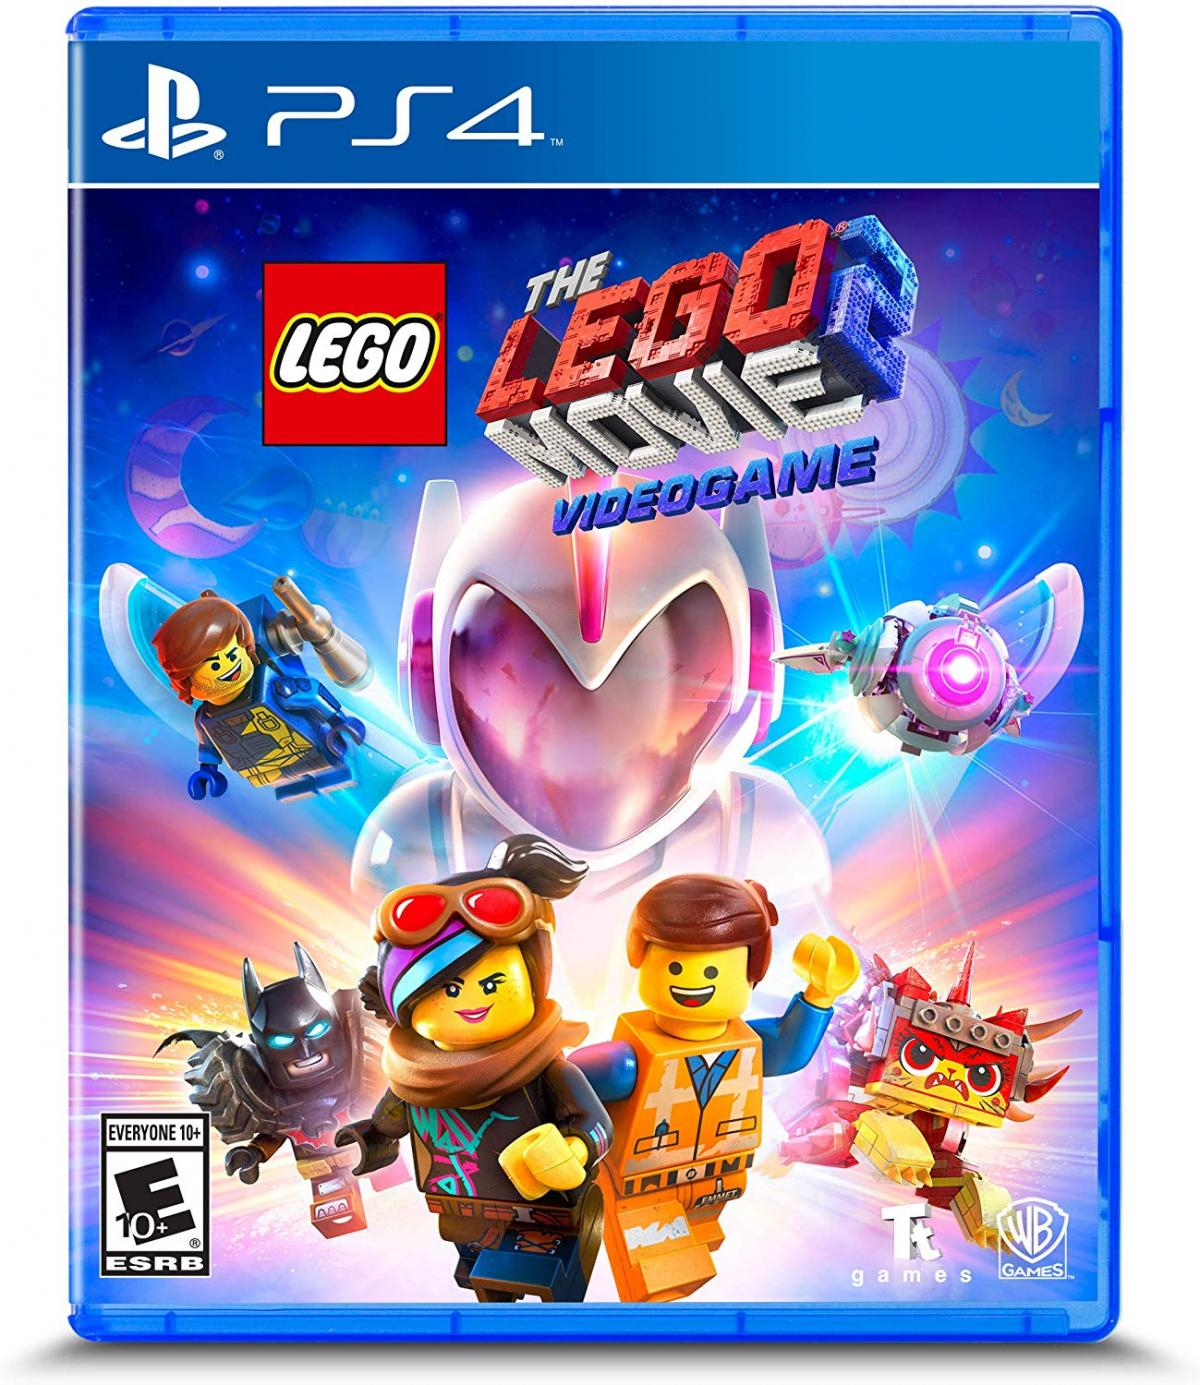 The Lego Movie 2 Videogame PS4